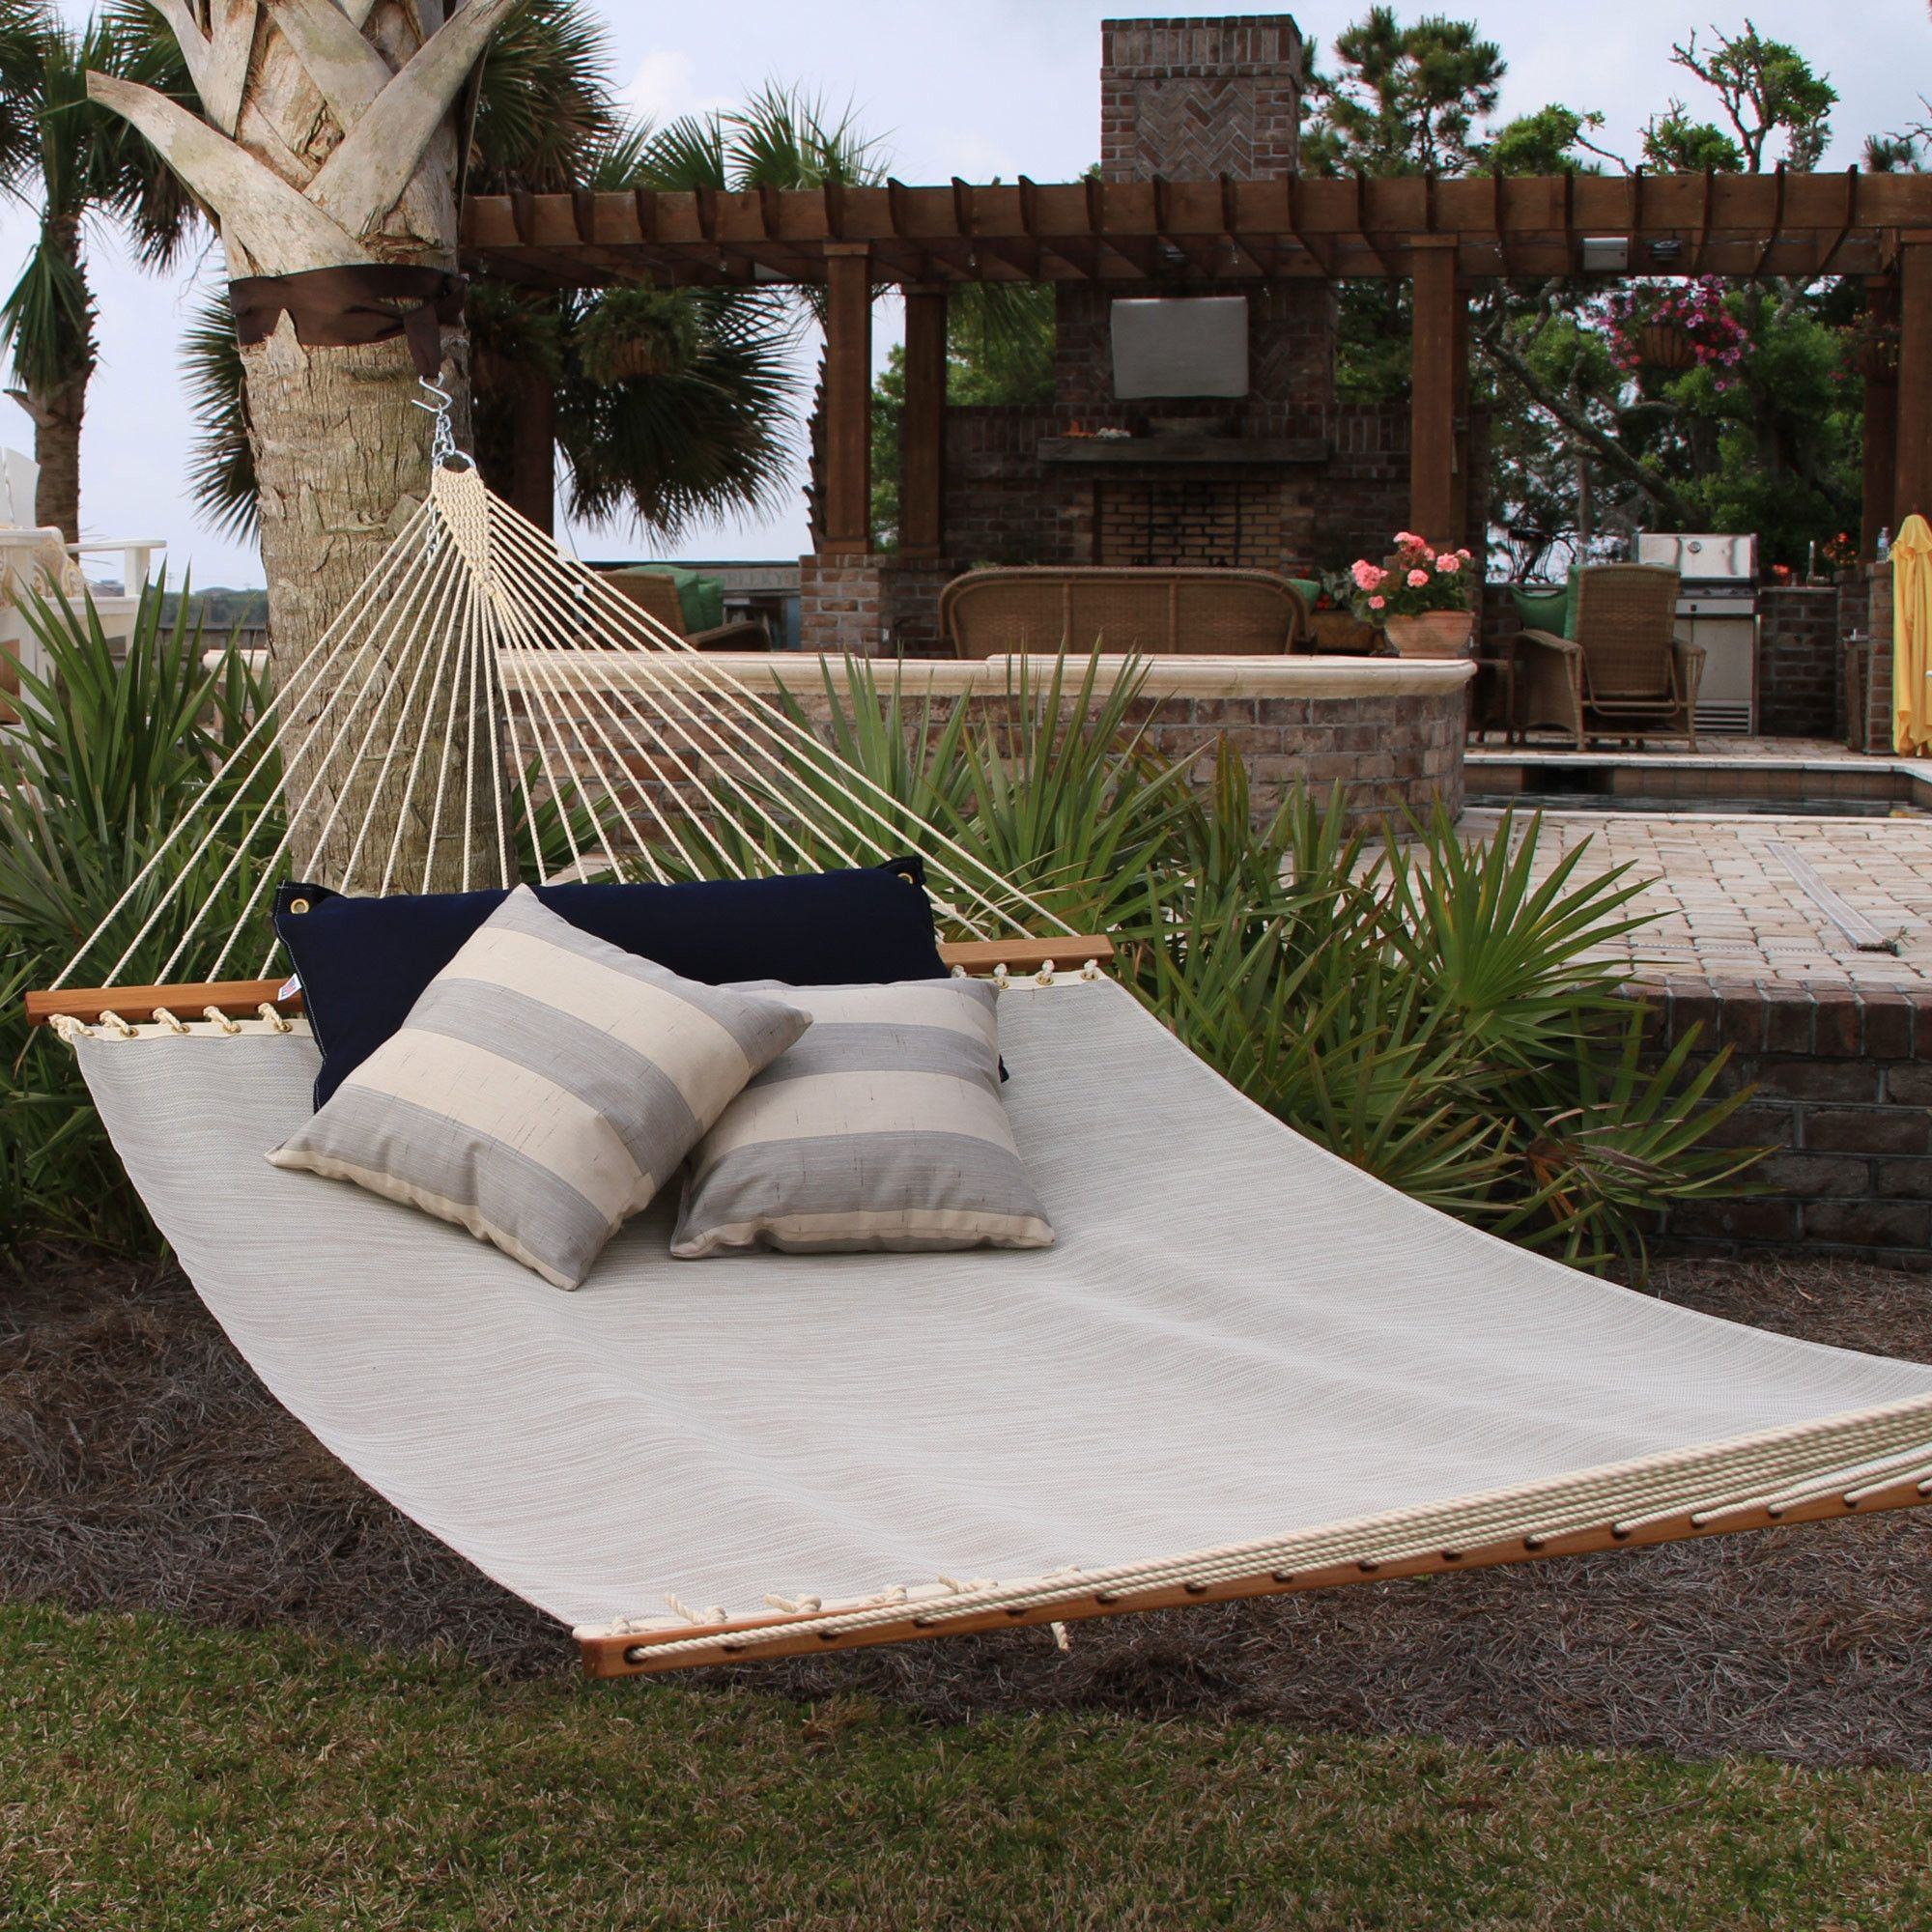 products garden sand strip island fabric hammock trellis stand large xx quilted decade pawleys home